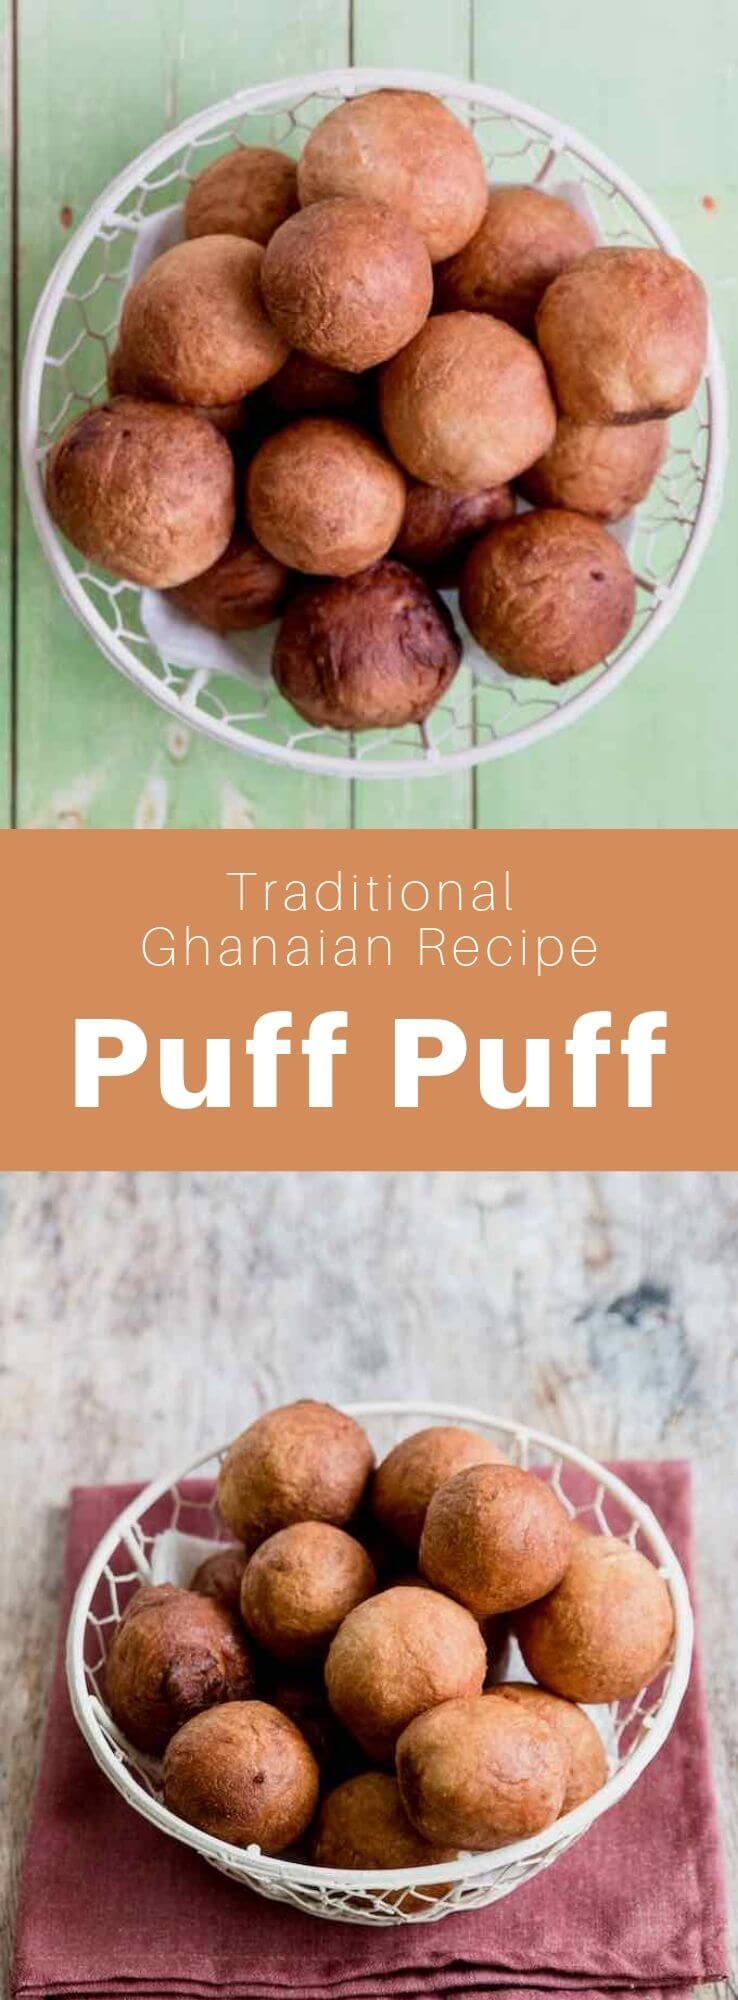 Puff puff, also known as bofrot, kala, mikate, or togbei is a popular donut in West Africa, especially in Ghana, Sierra Leone, Cameroon, and Nigeria. #Ghana #GhanaianCuisine #GhanaianFood #GhanaianRecipe #NigerianRecipe #SierraLeoneRecipe #CameroonRecipe #AfricanCuisine #AfricanFood #AfricanRecipe #WorldCuisine #196flavors